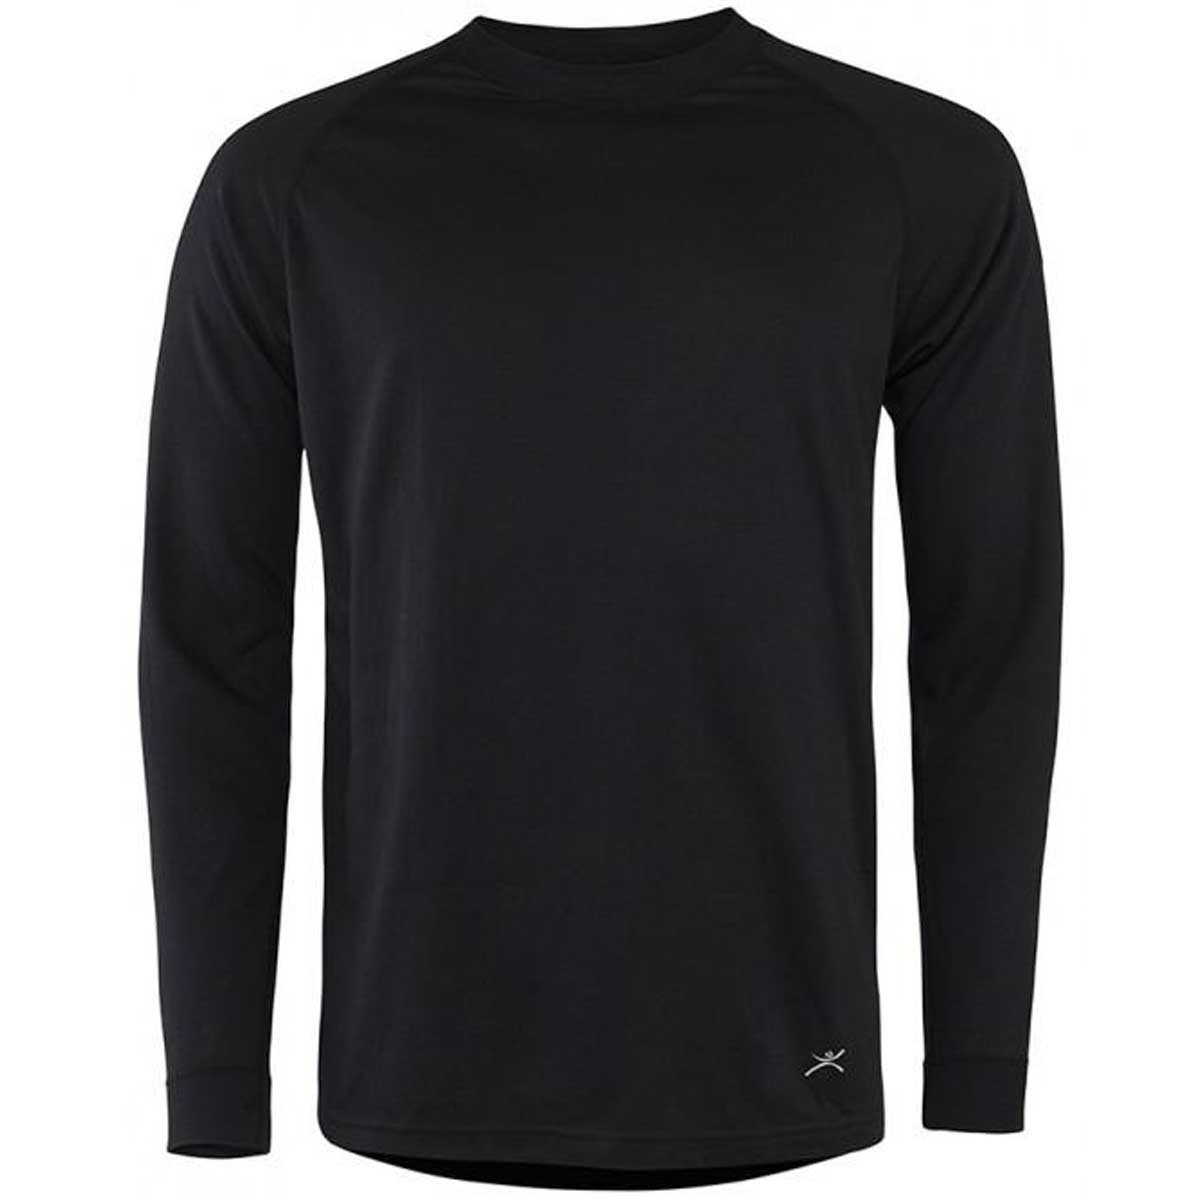 Terramar Men's Authentic 2 Layer Crew Top Thermal Underwear - Black, Small